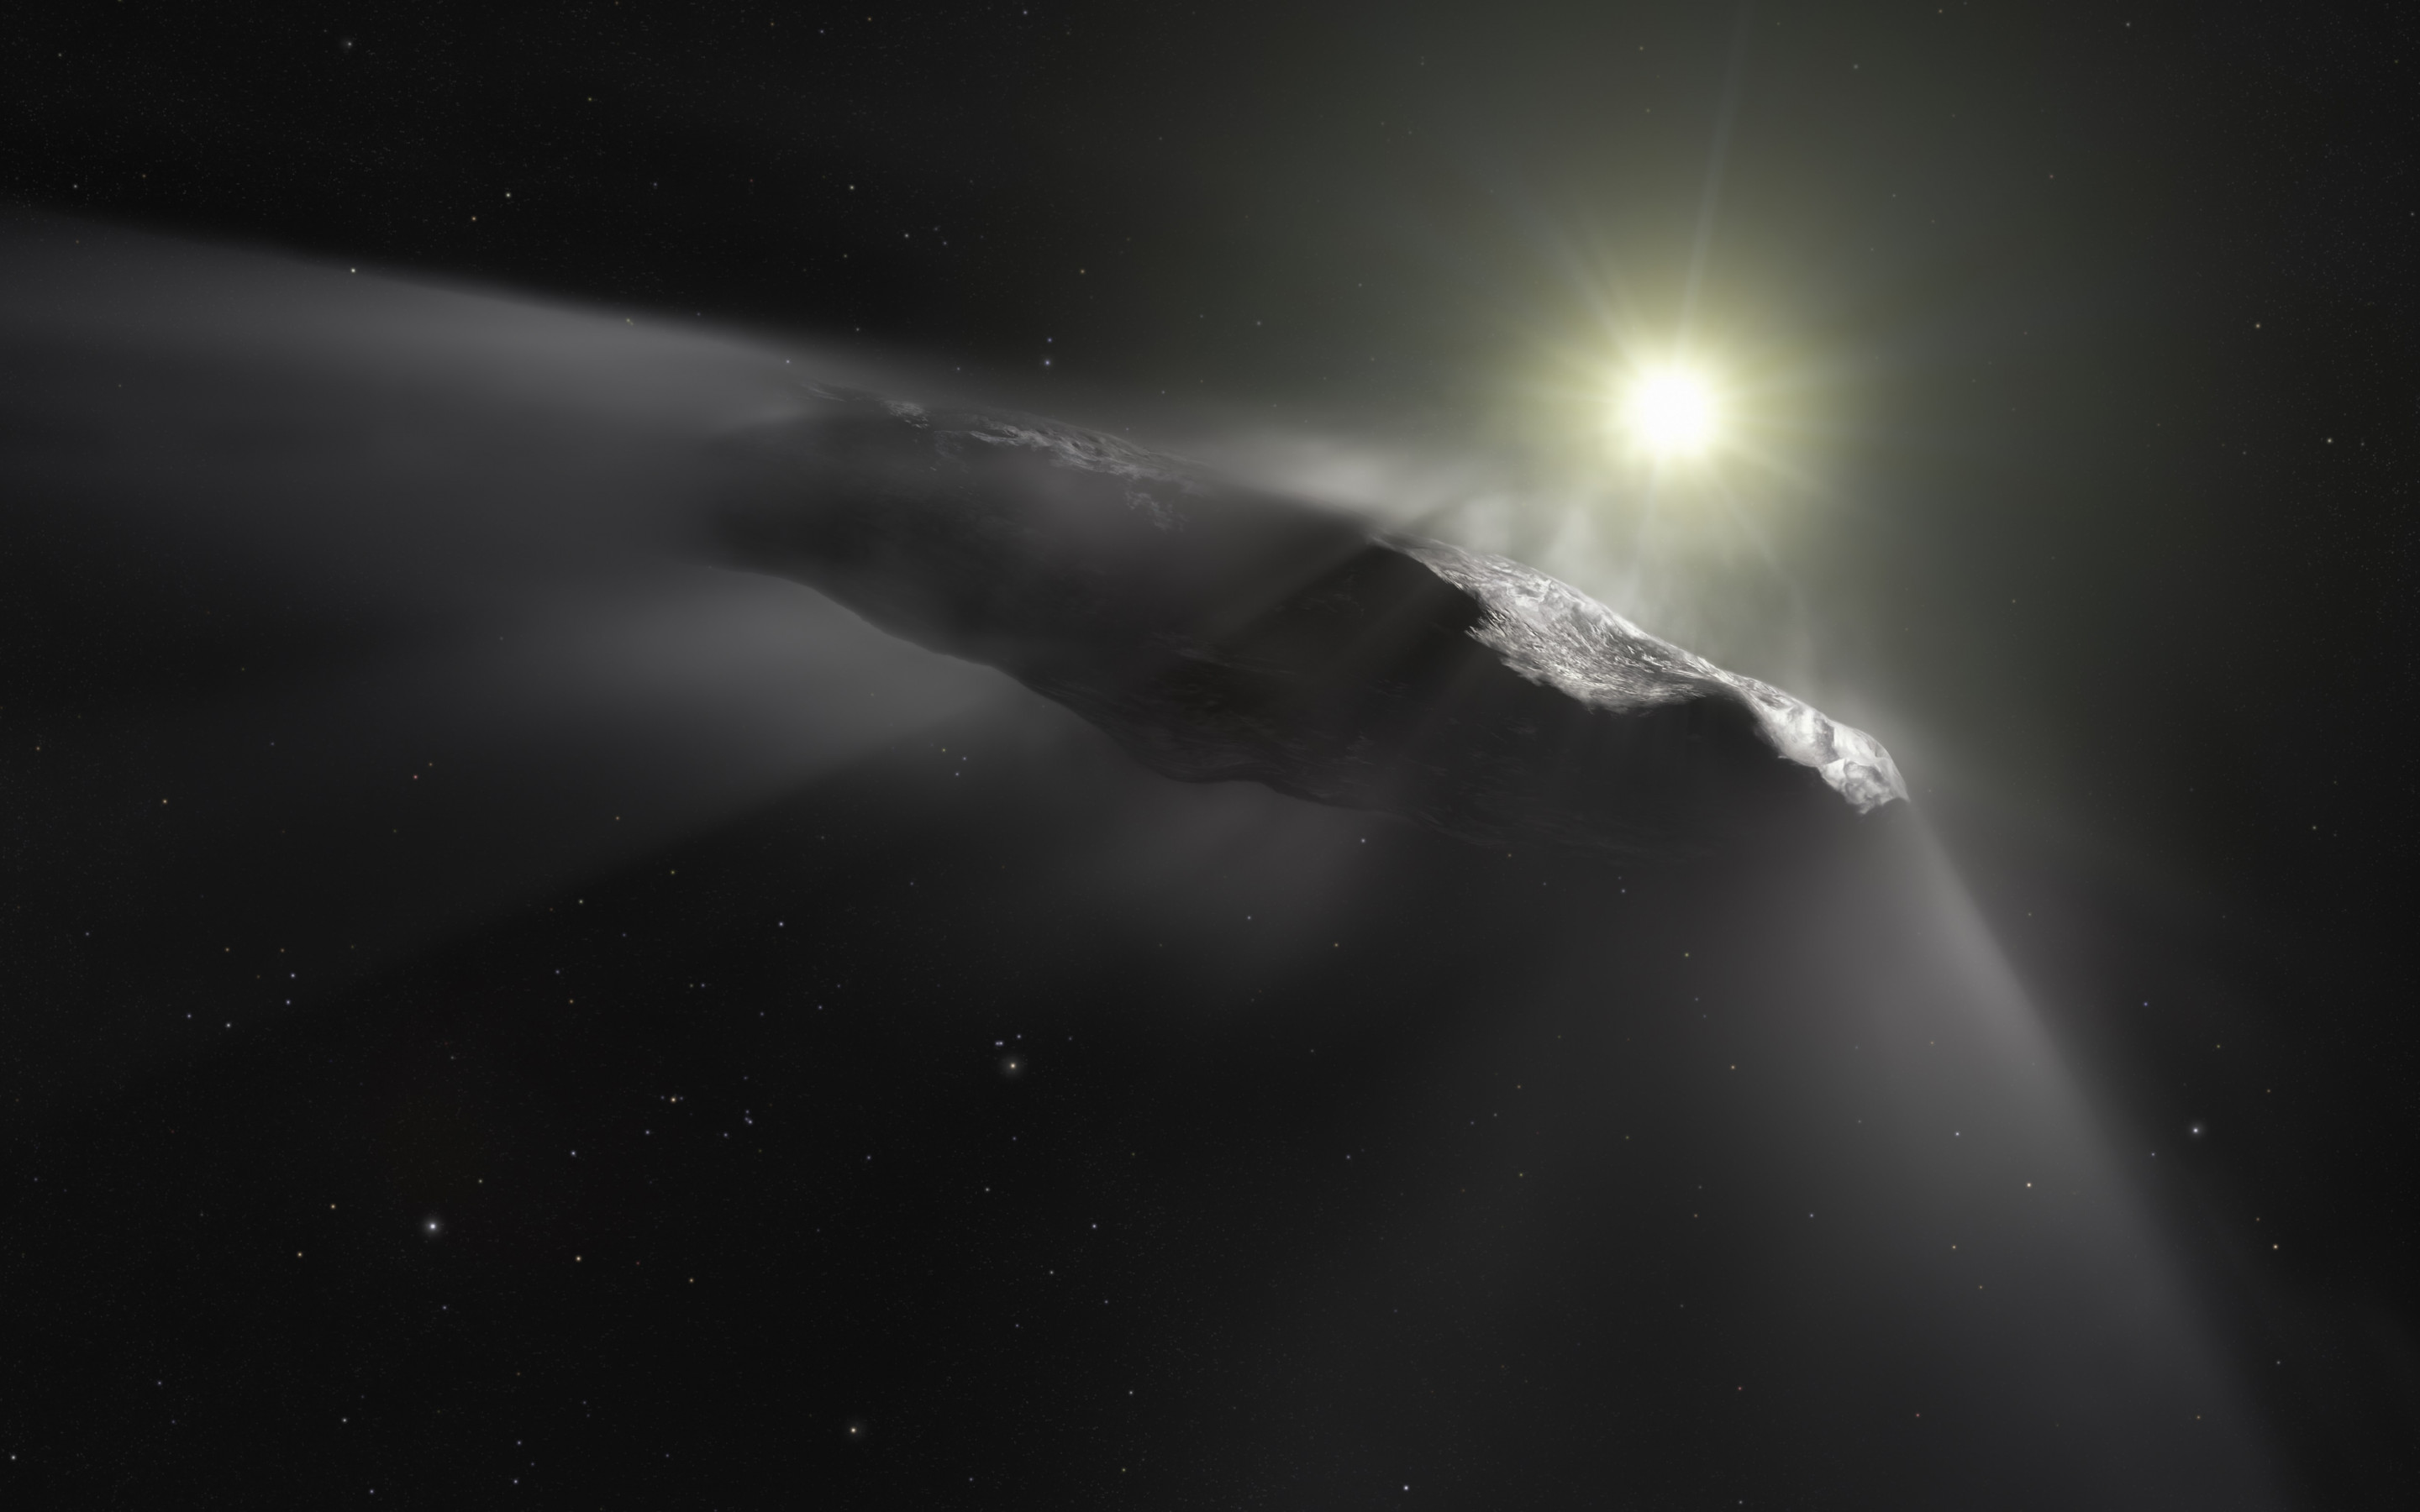 Oumuamua asteroid wallpaper 2880x1800